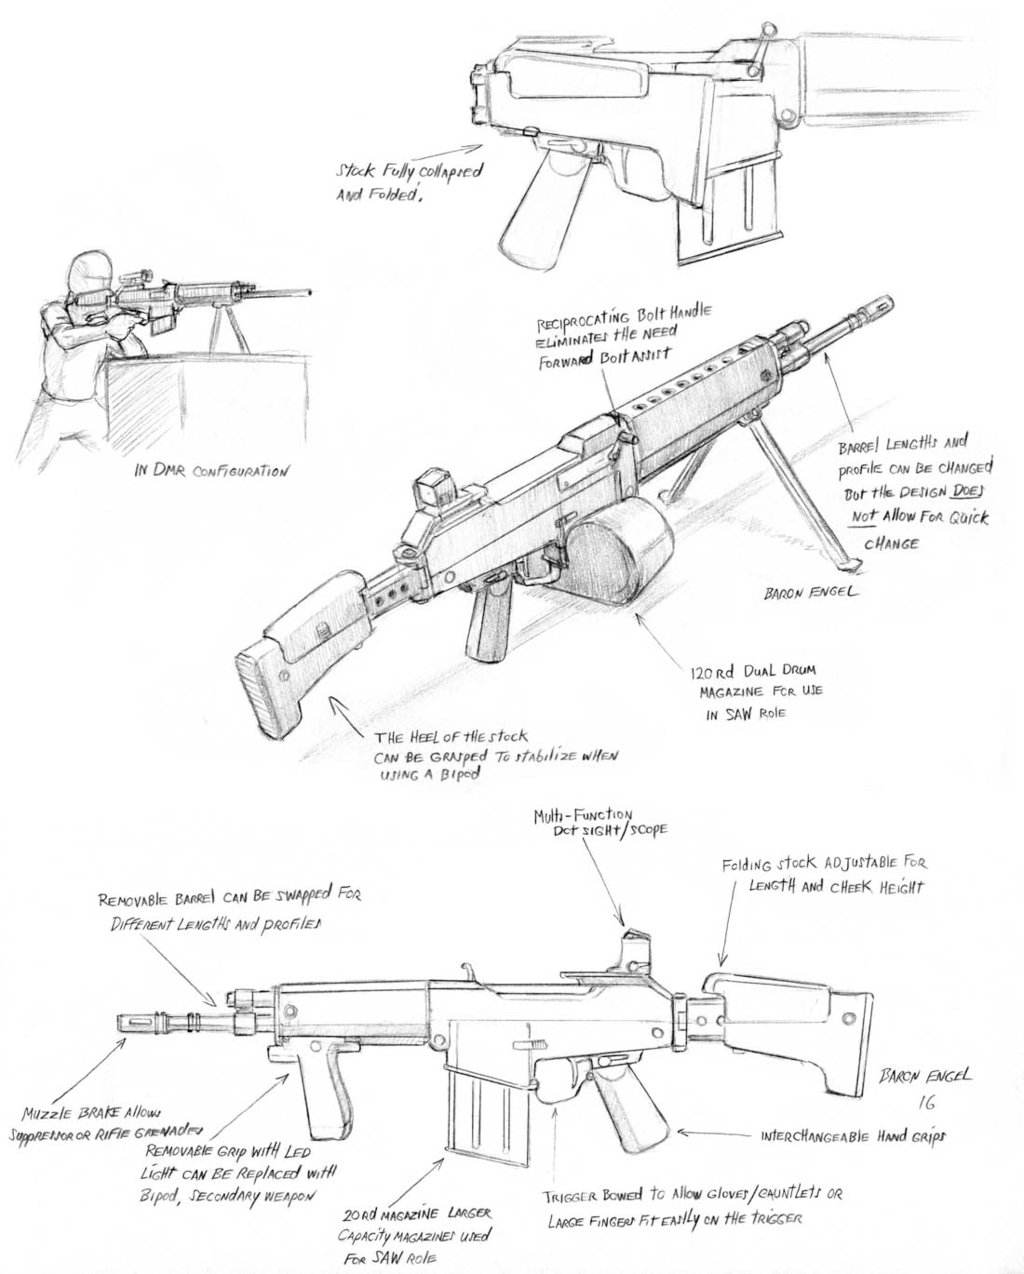 1024x1274 Commission Rifle Concept Design By Baron Engel